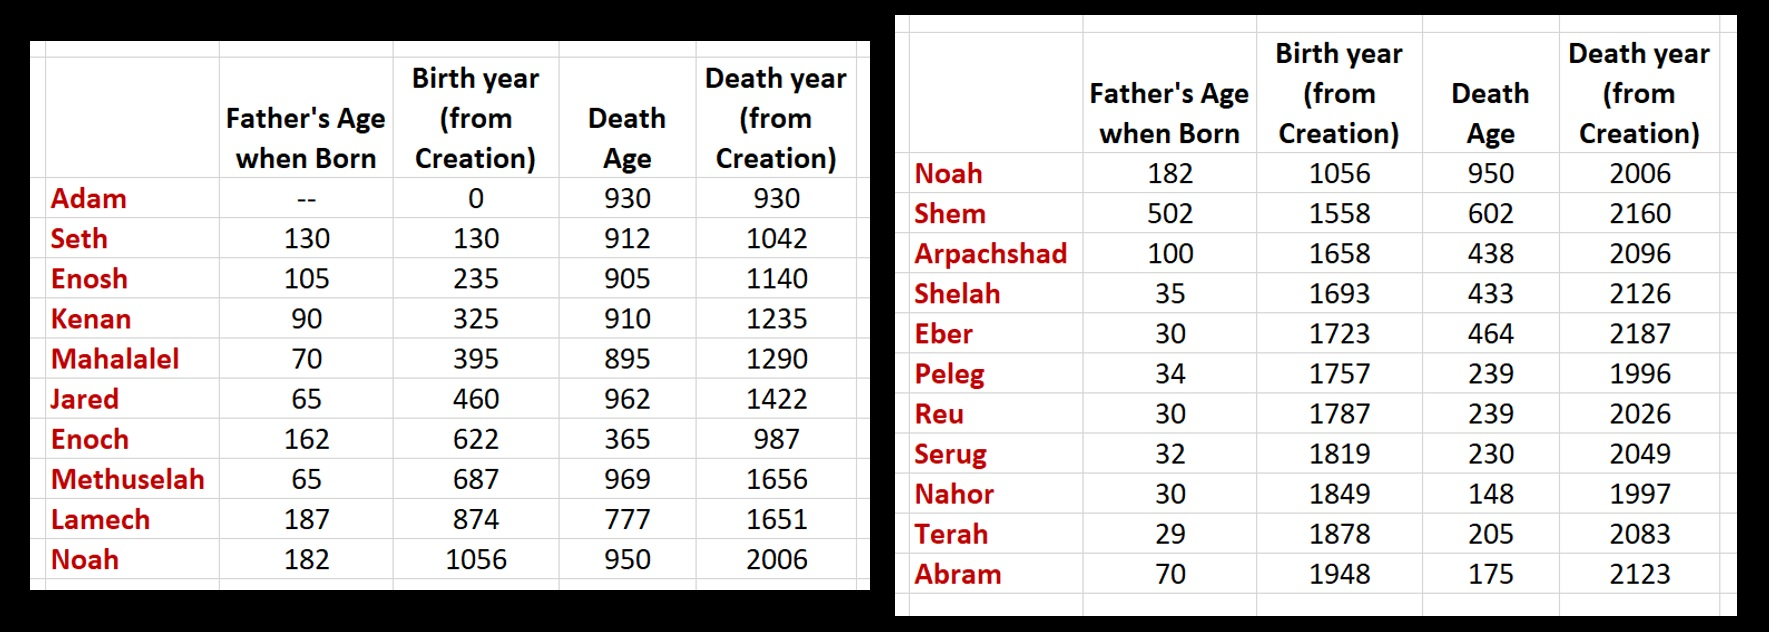 Table of birth and death years (measured from creation) of people in the lineage from Adam to Abraham, according to ages provided in the 5th and 12th chapters of Genesis.